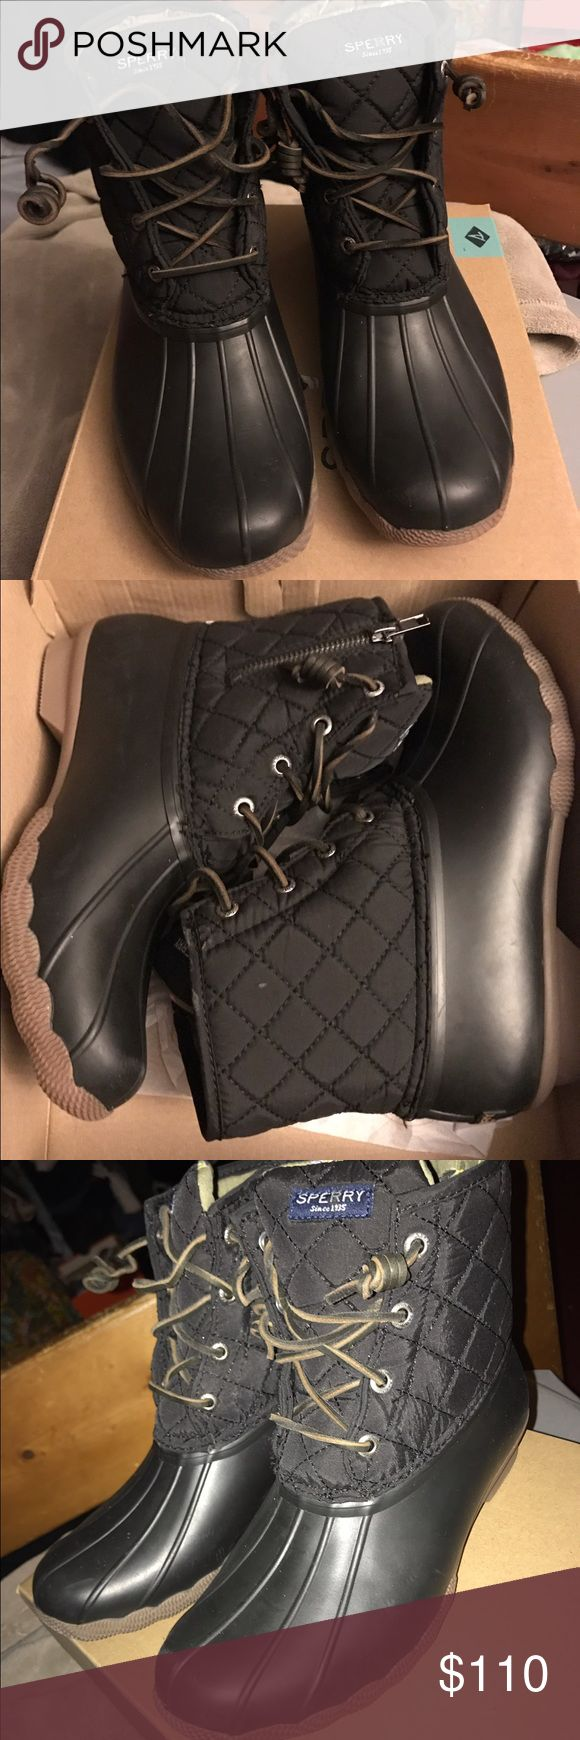 Sperry quilt boot Rain and snow winter fashion quilt not by sperry. Brand new and a couple sizes available. Can do a little cheaper on merc Sperry Shoes Ankle Boots & Booties